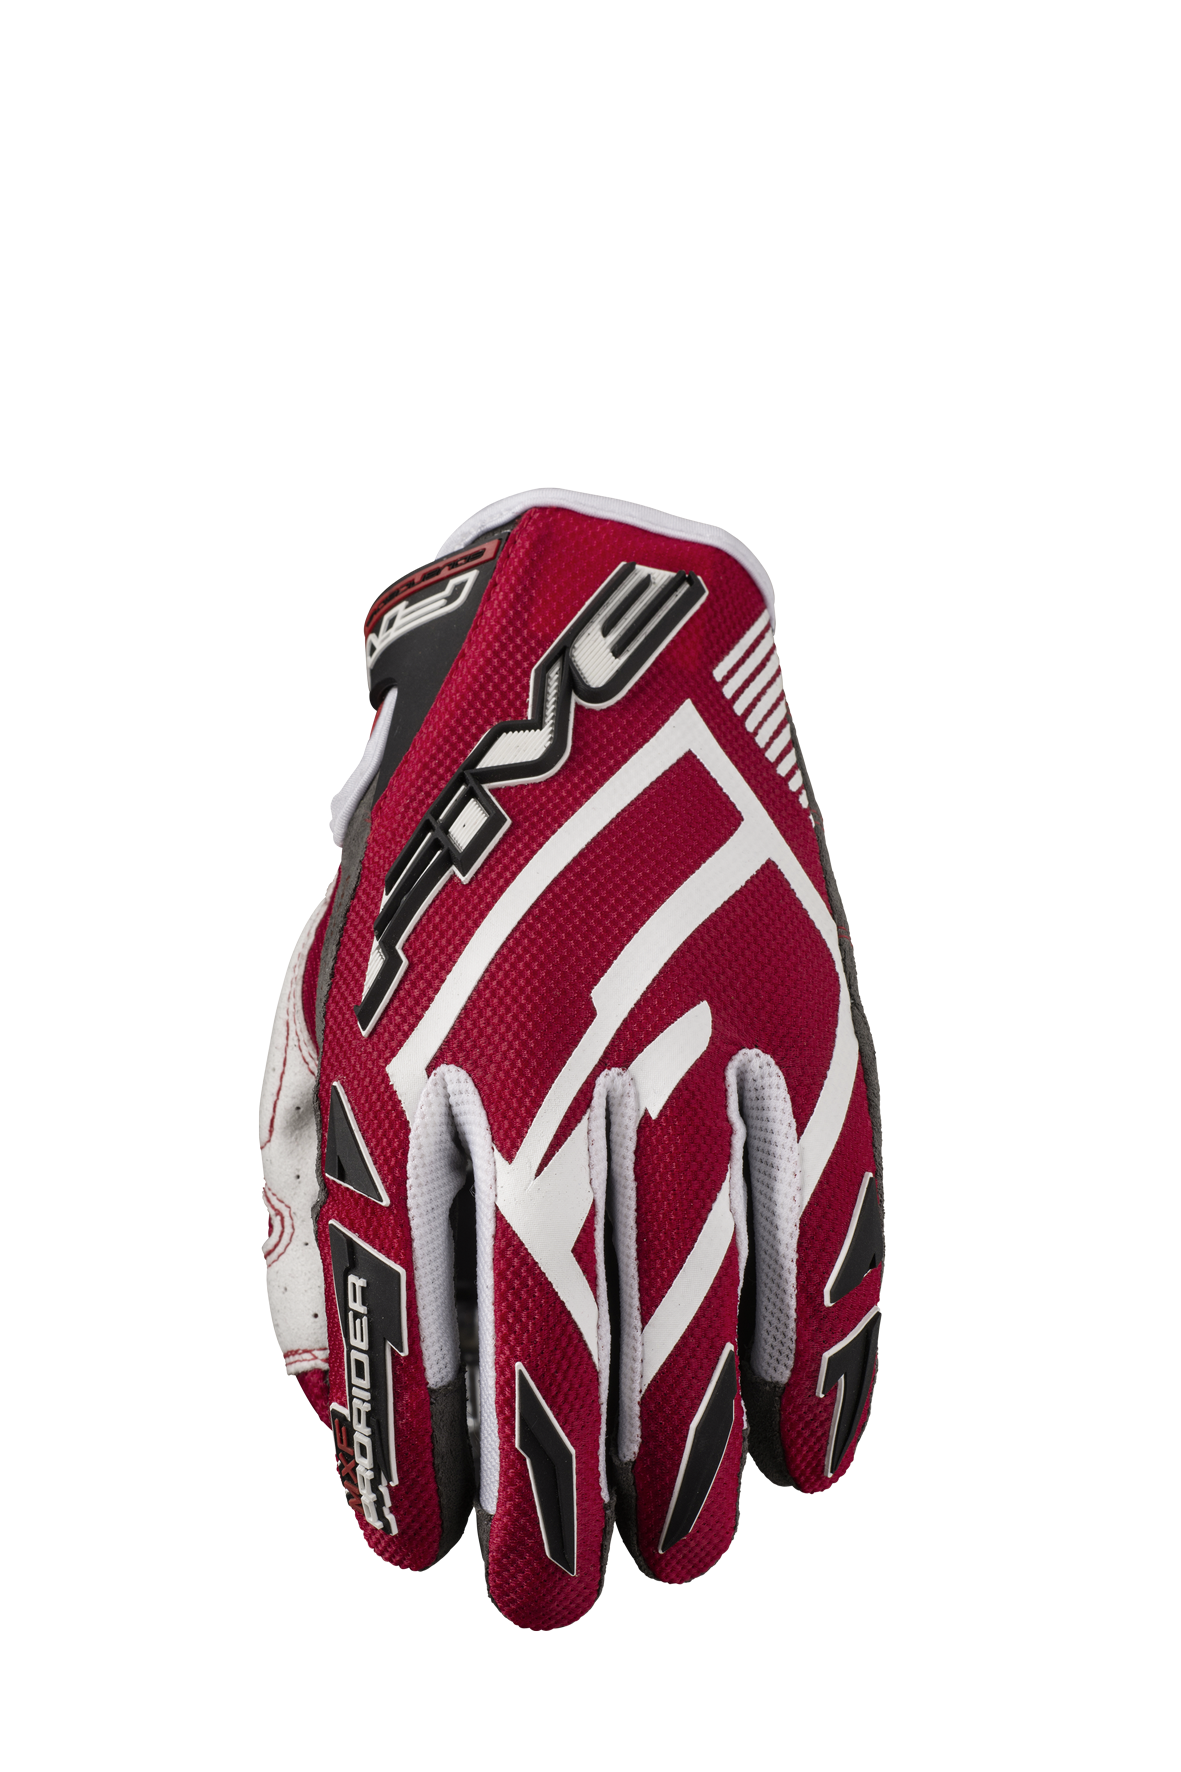 NEW PRODUCT: FIVE MX GLOVES